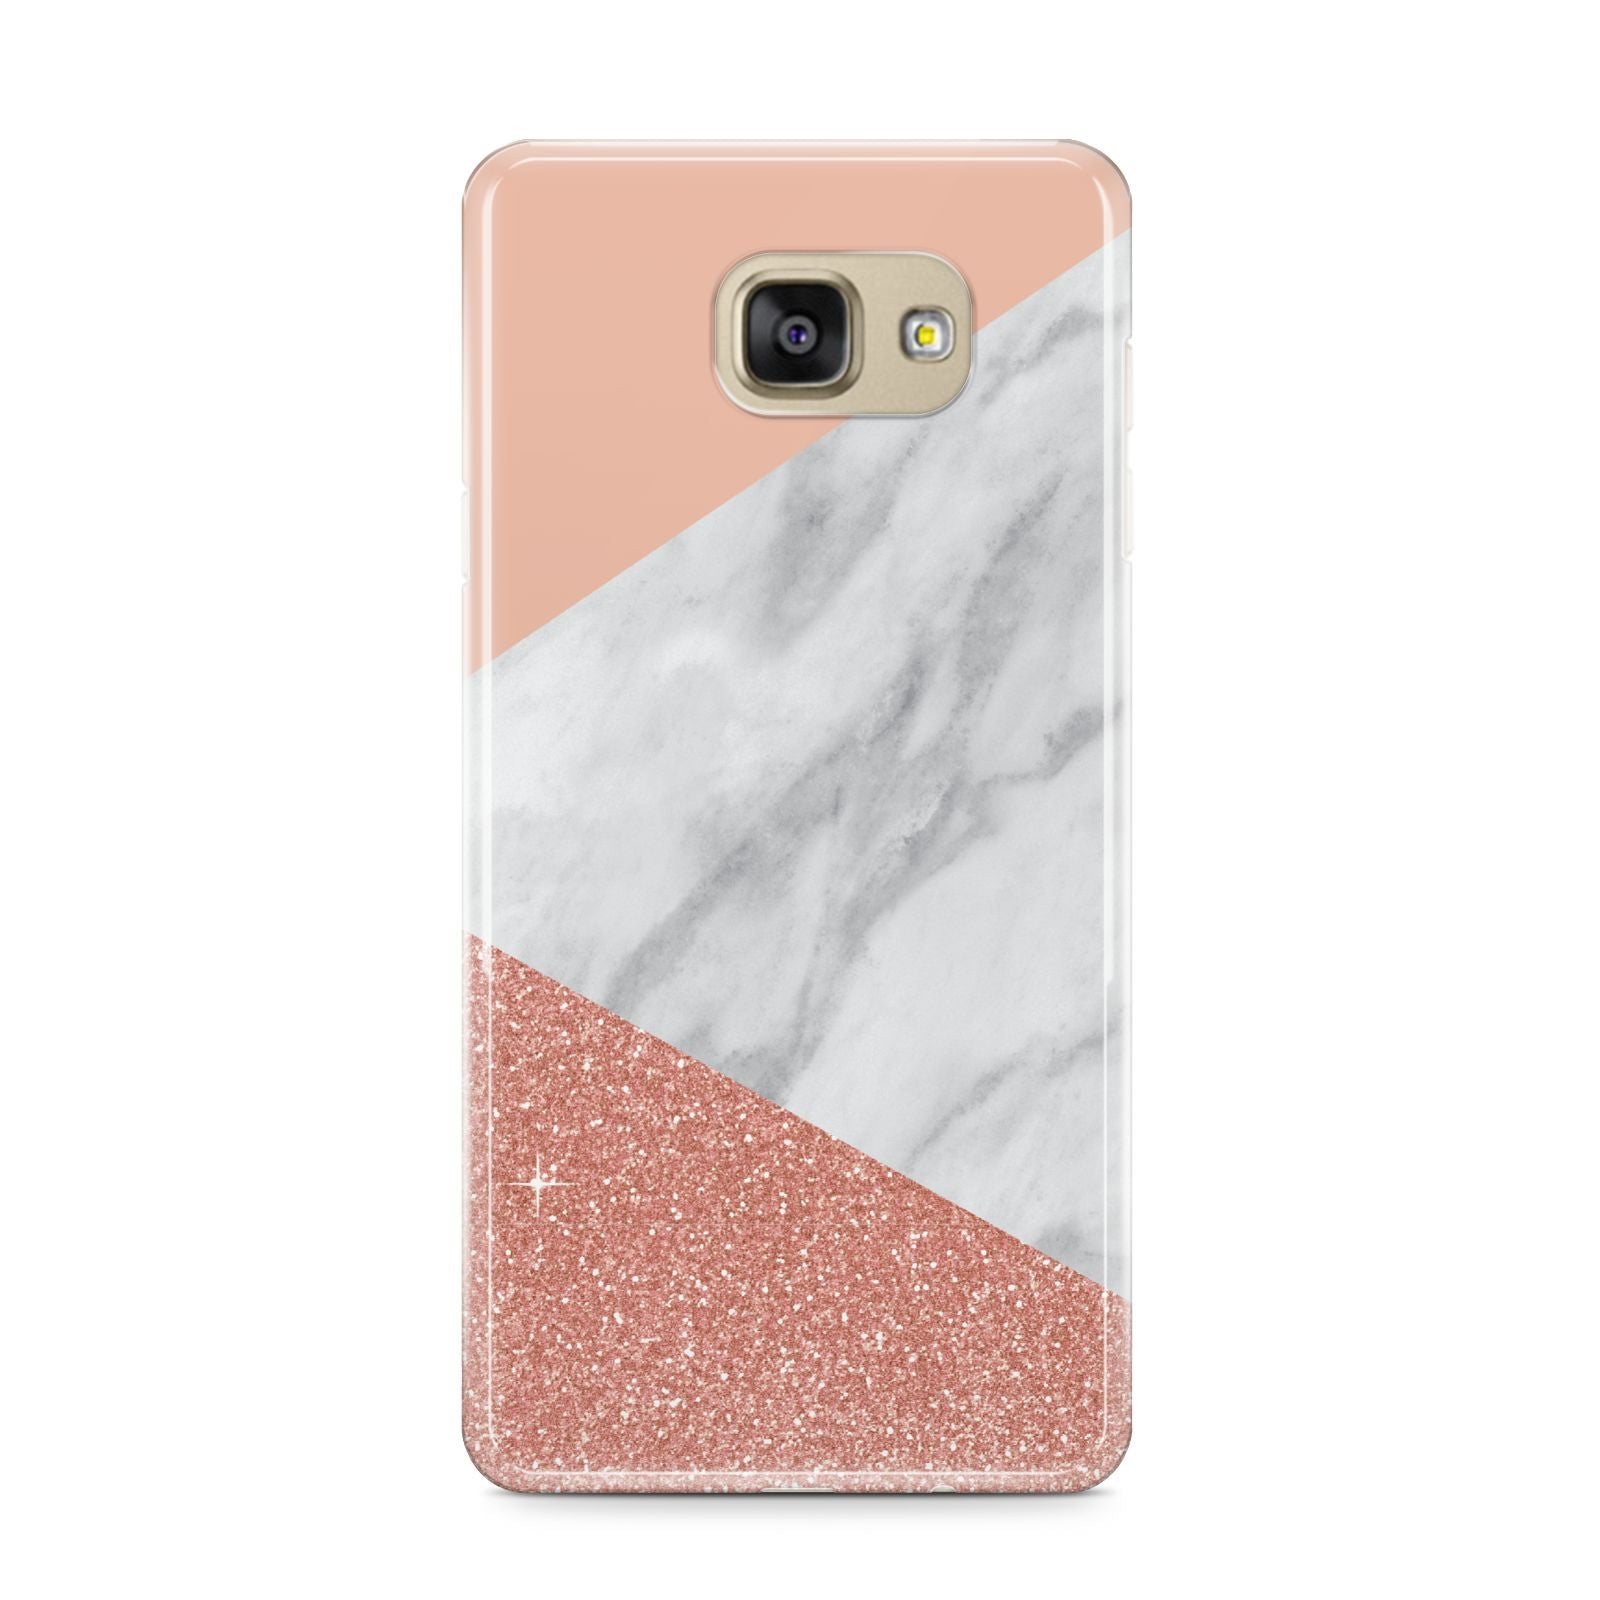 Marble White Rose Gold Samsung Galaxy A9 2016 Case on gold phone